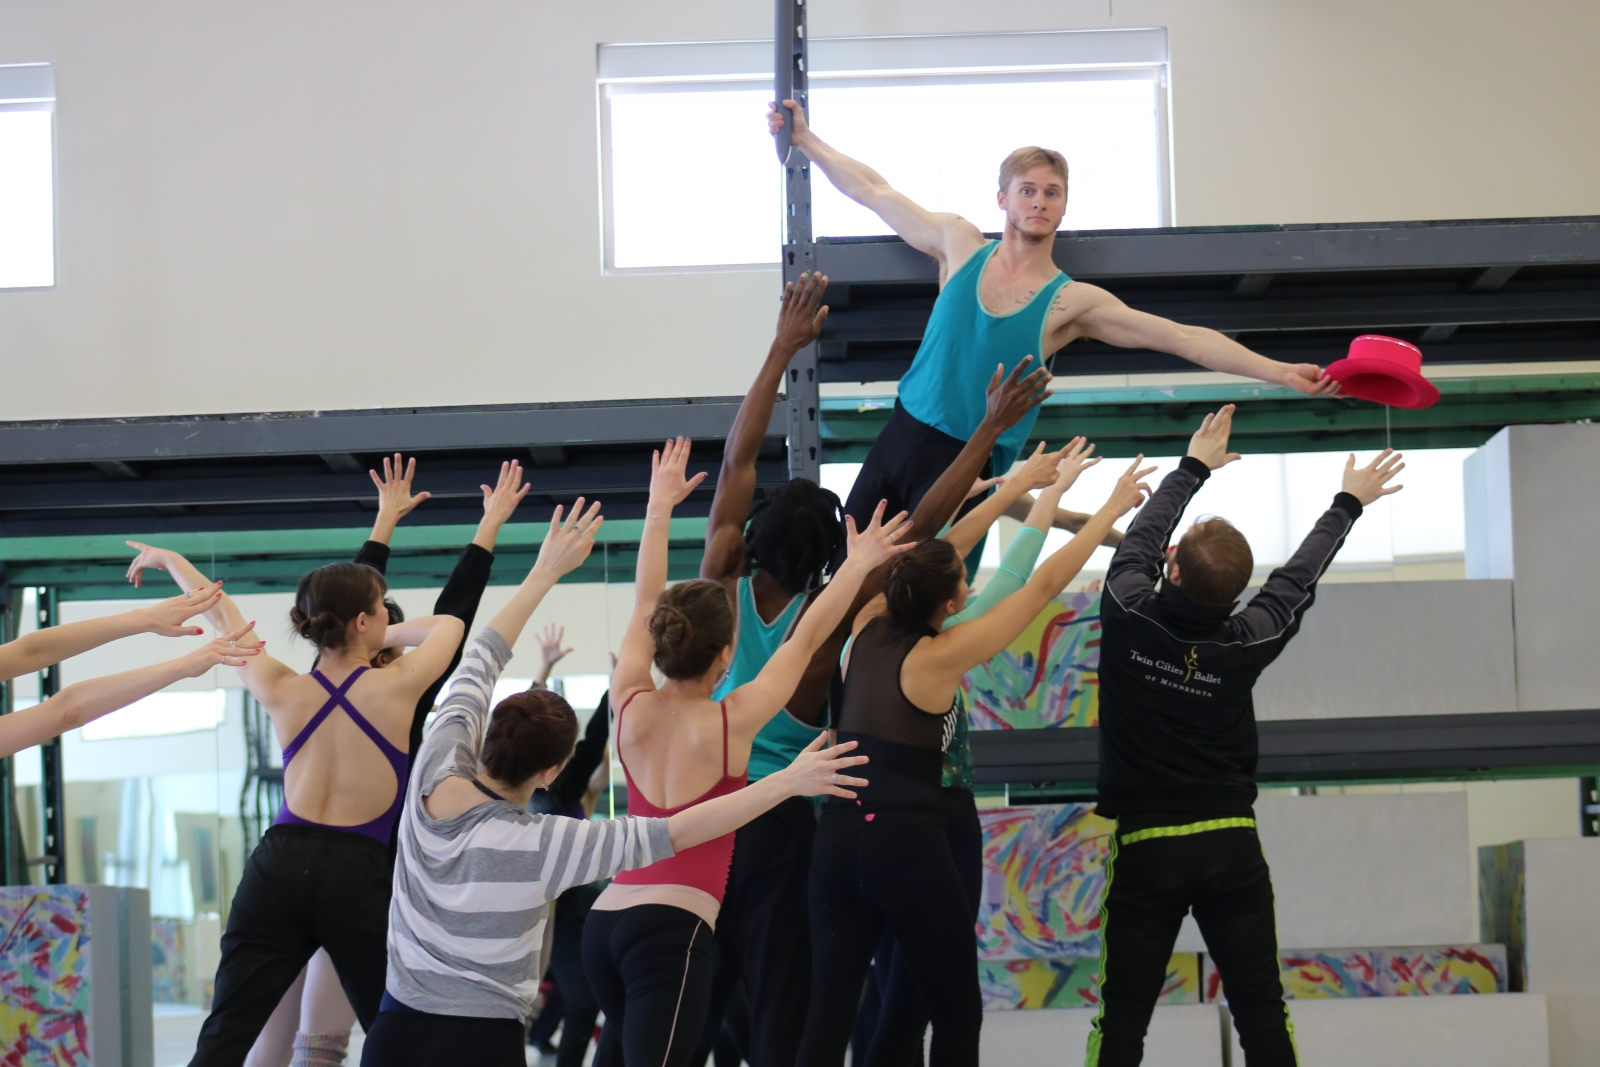 """Photo by Sarah Lopz Donovan of Luke Xavier as Pink in rehearsal with the rest of the cast for Twin Cities Ballet's """"The Wall."""""""